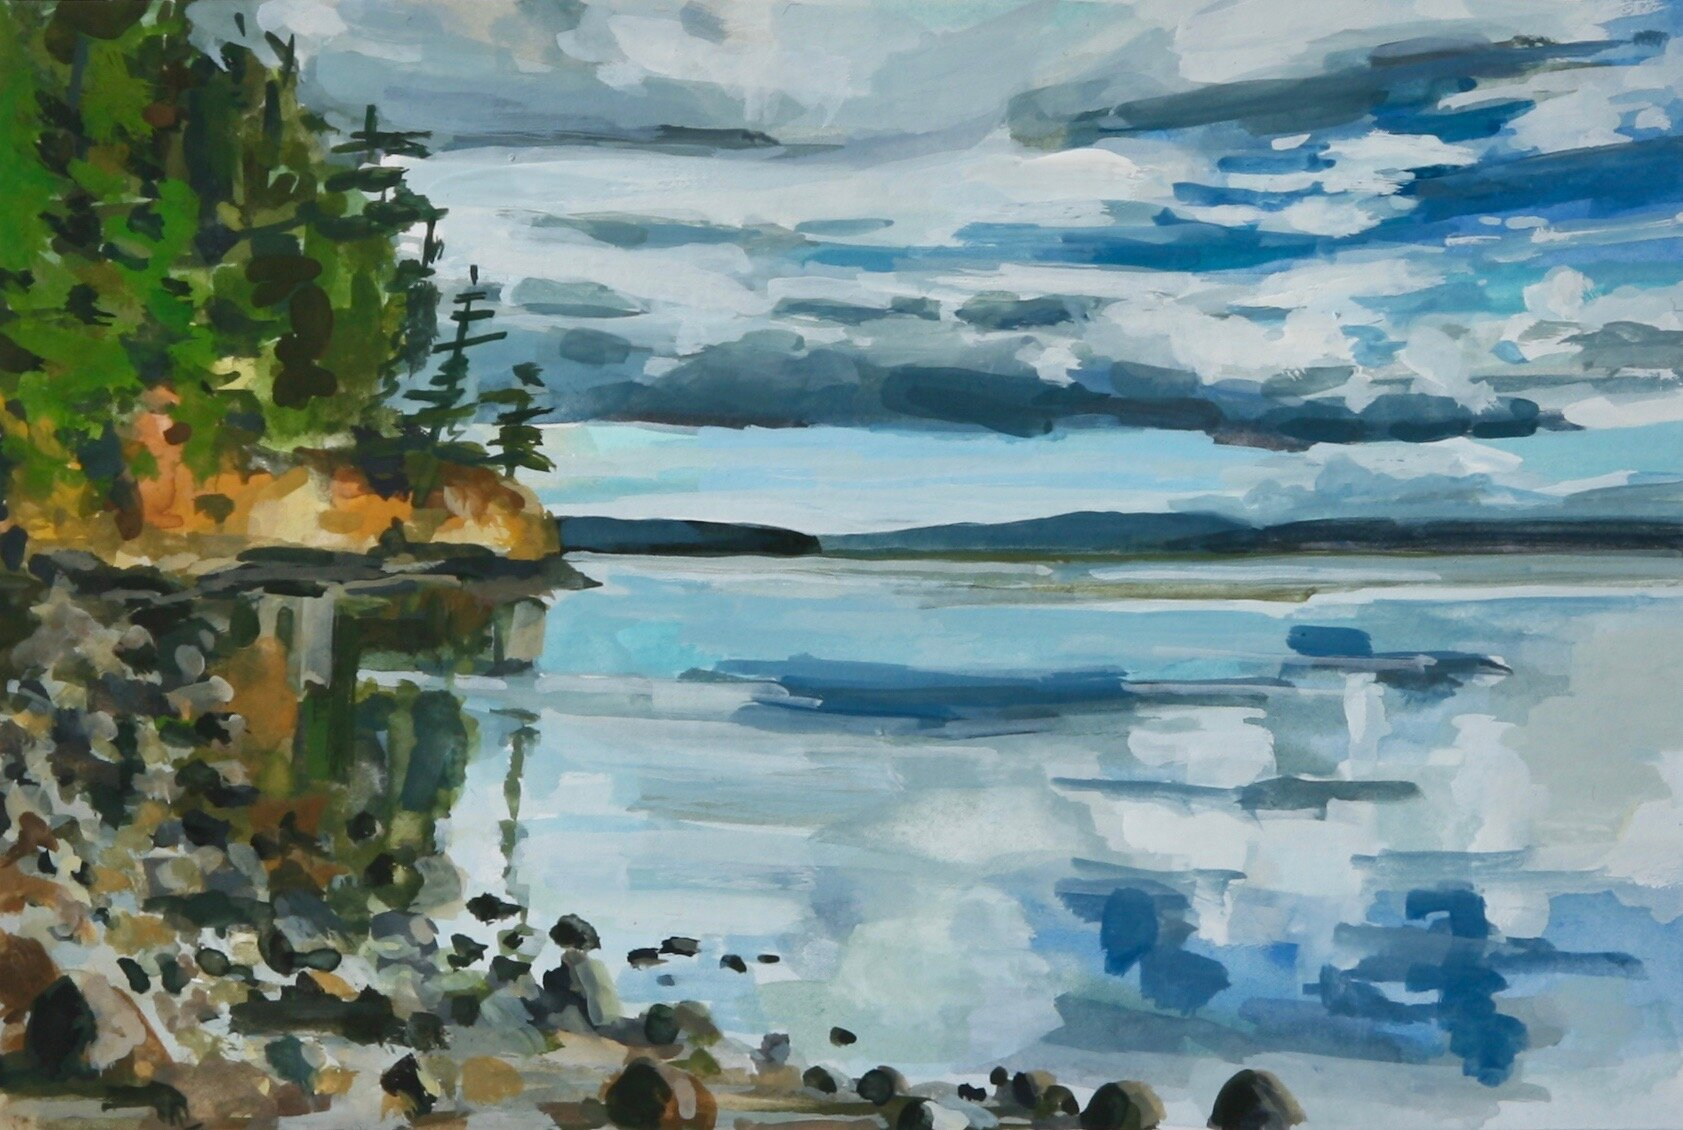 """'Rocky Cove'  2019  6"""" x 4""""  gouache on paper  sold"""